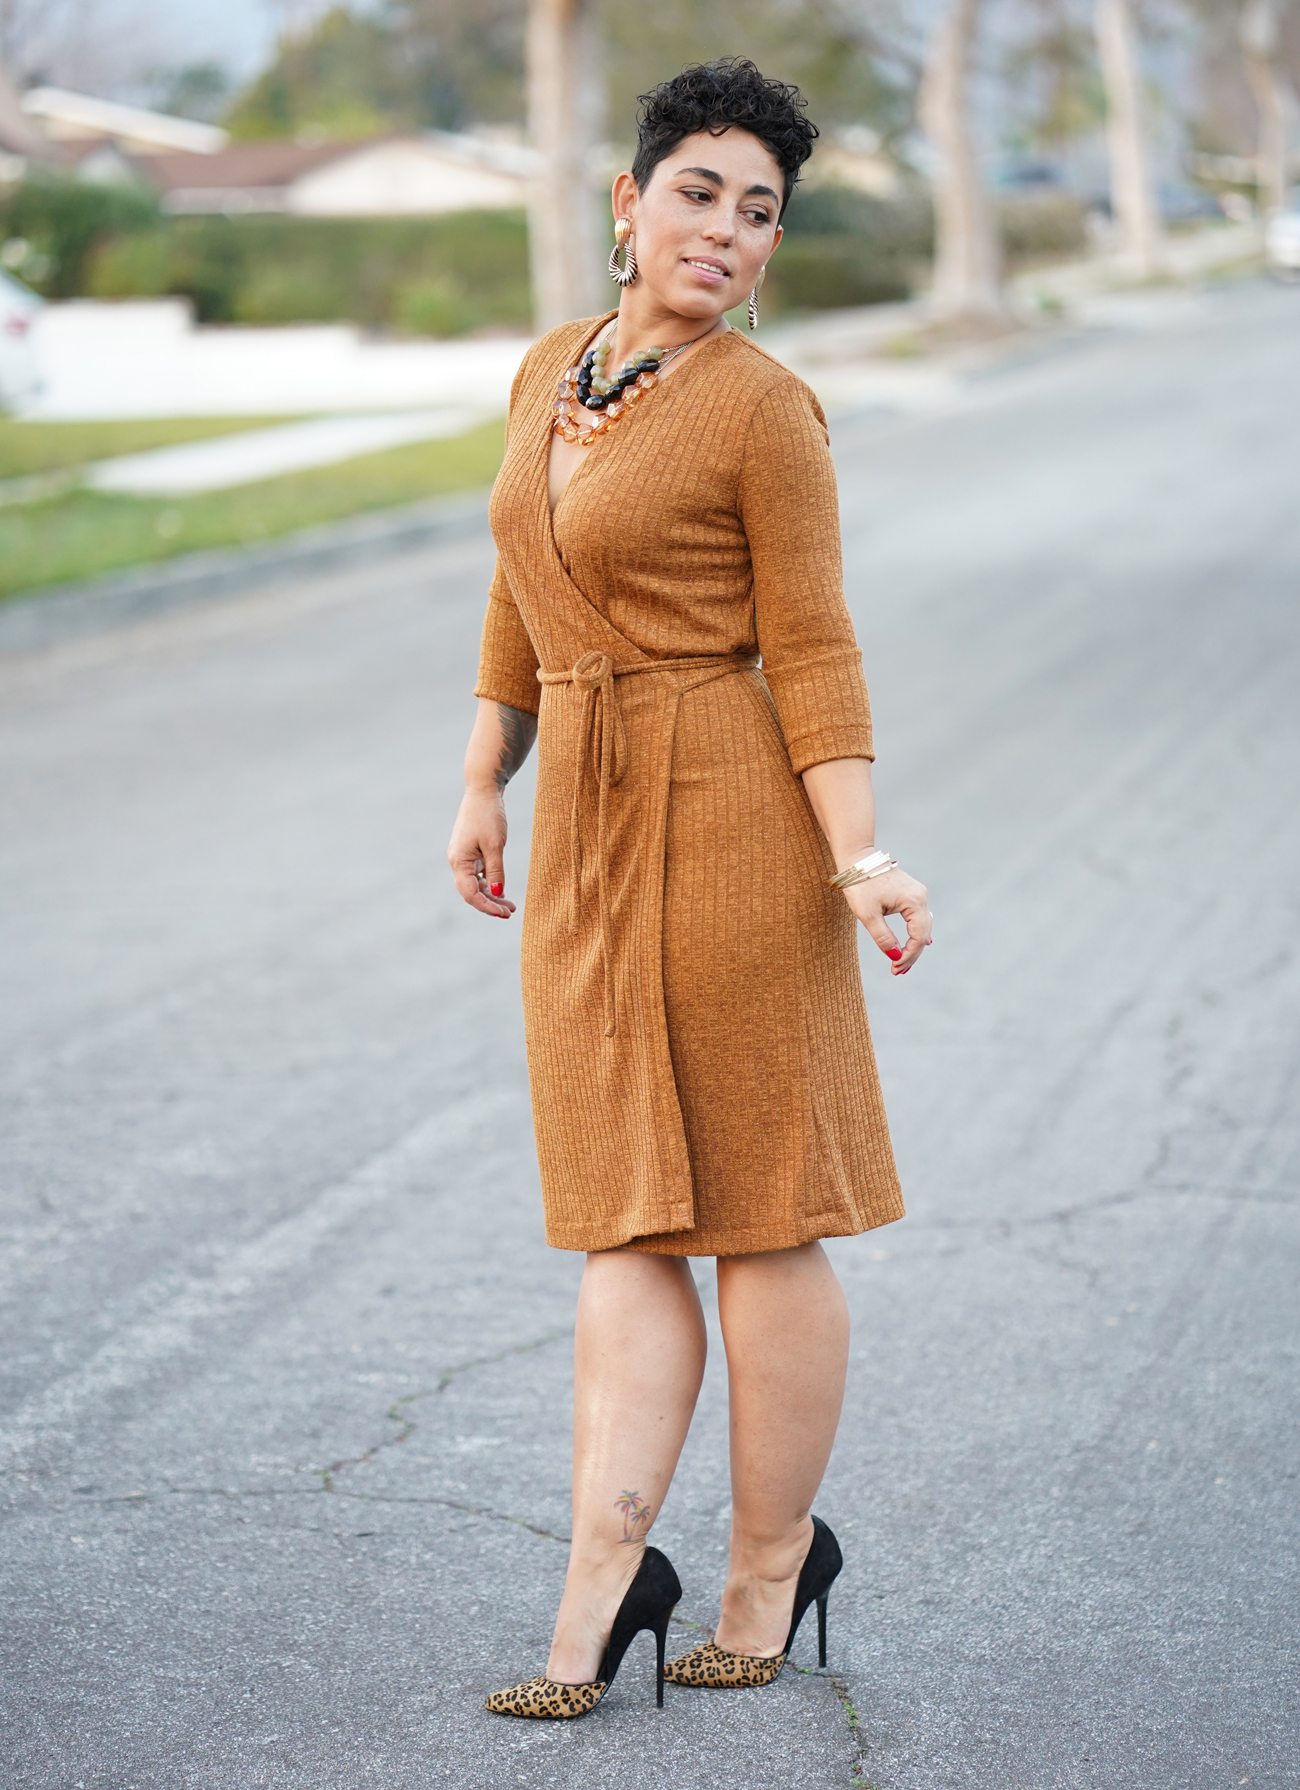 Diy Wrap Dress Using New Look 6581 Sew Along Video